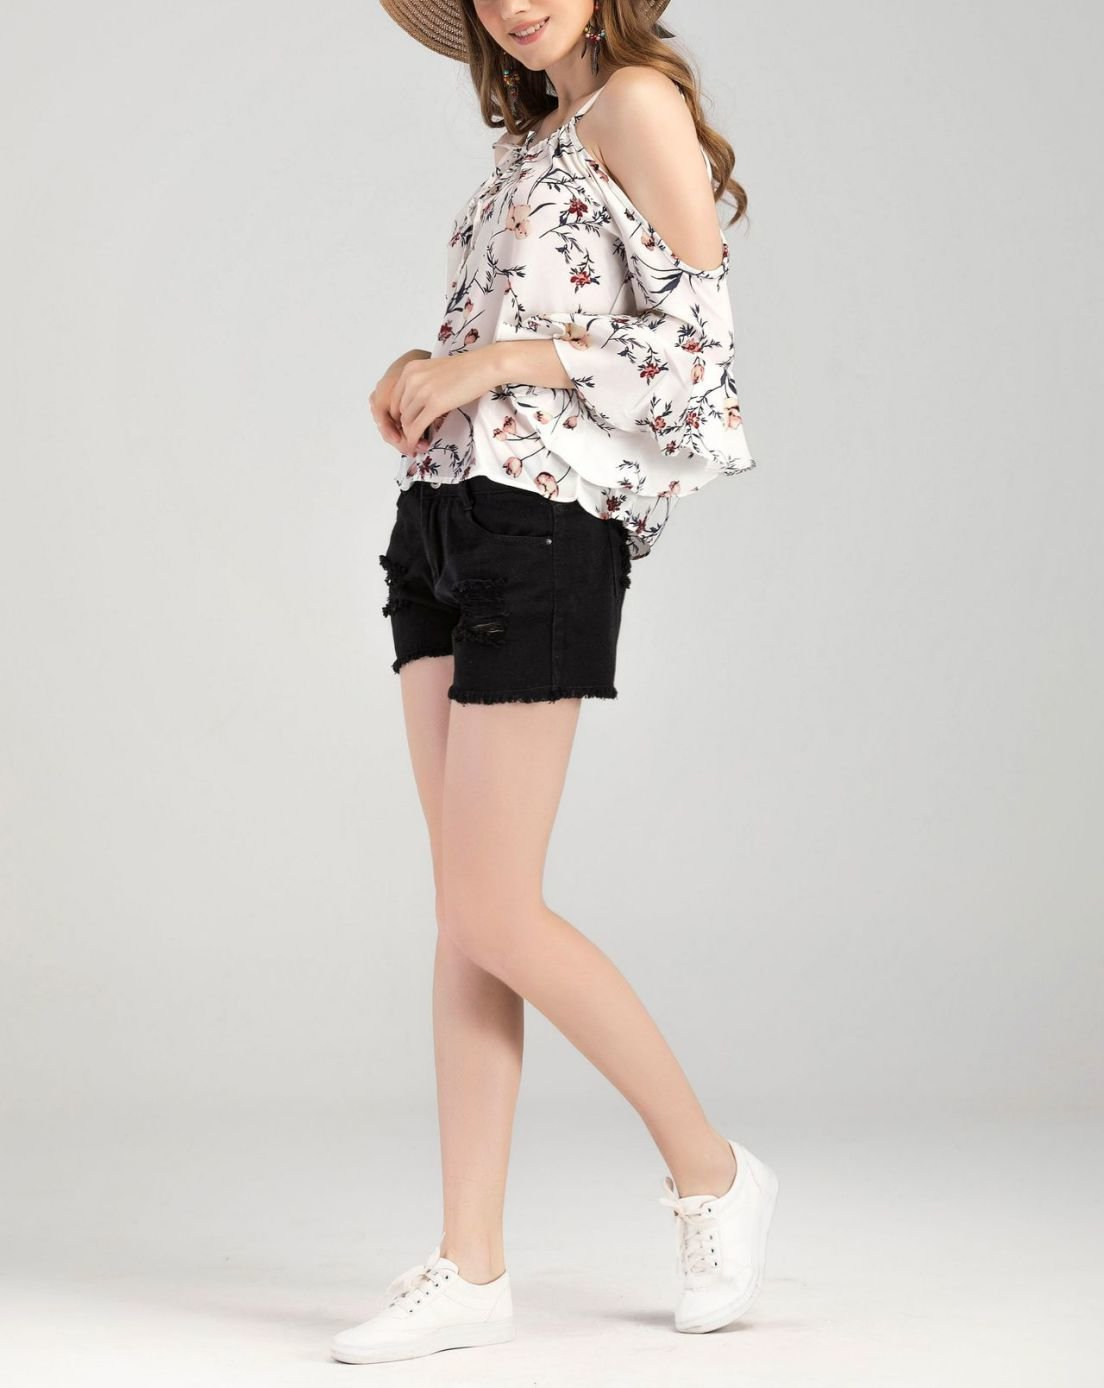 Floral Cropped Top with Ruffled Sleeves and Cold Shoulders